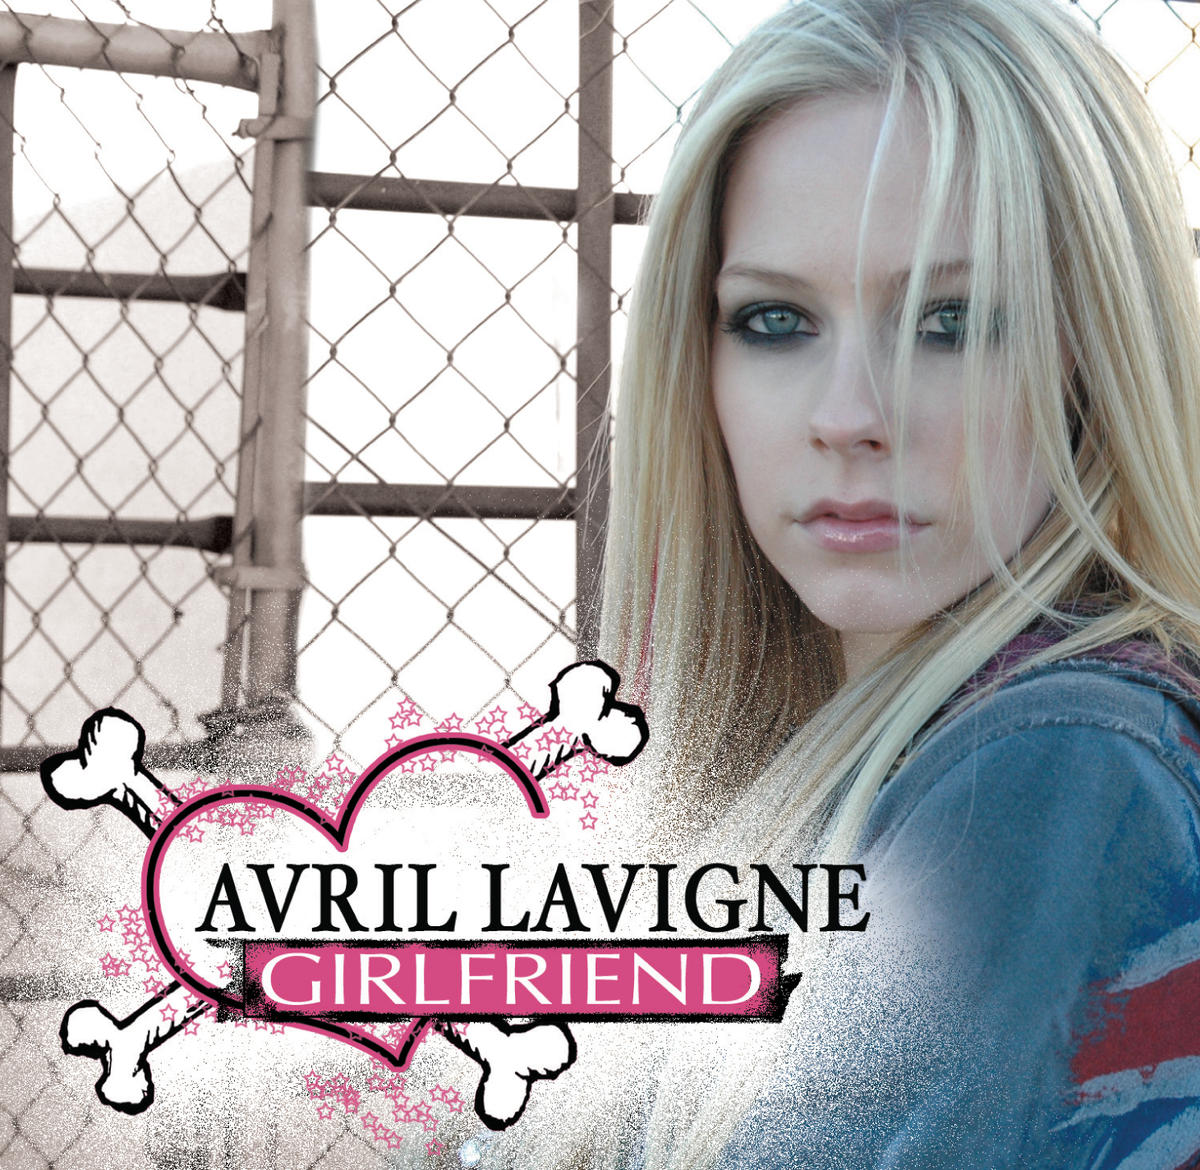 Girlfriend | Avril Lavigne Wiki | FANDOM powered by Wikia